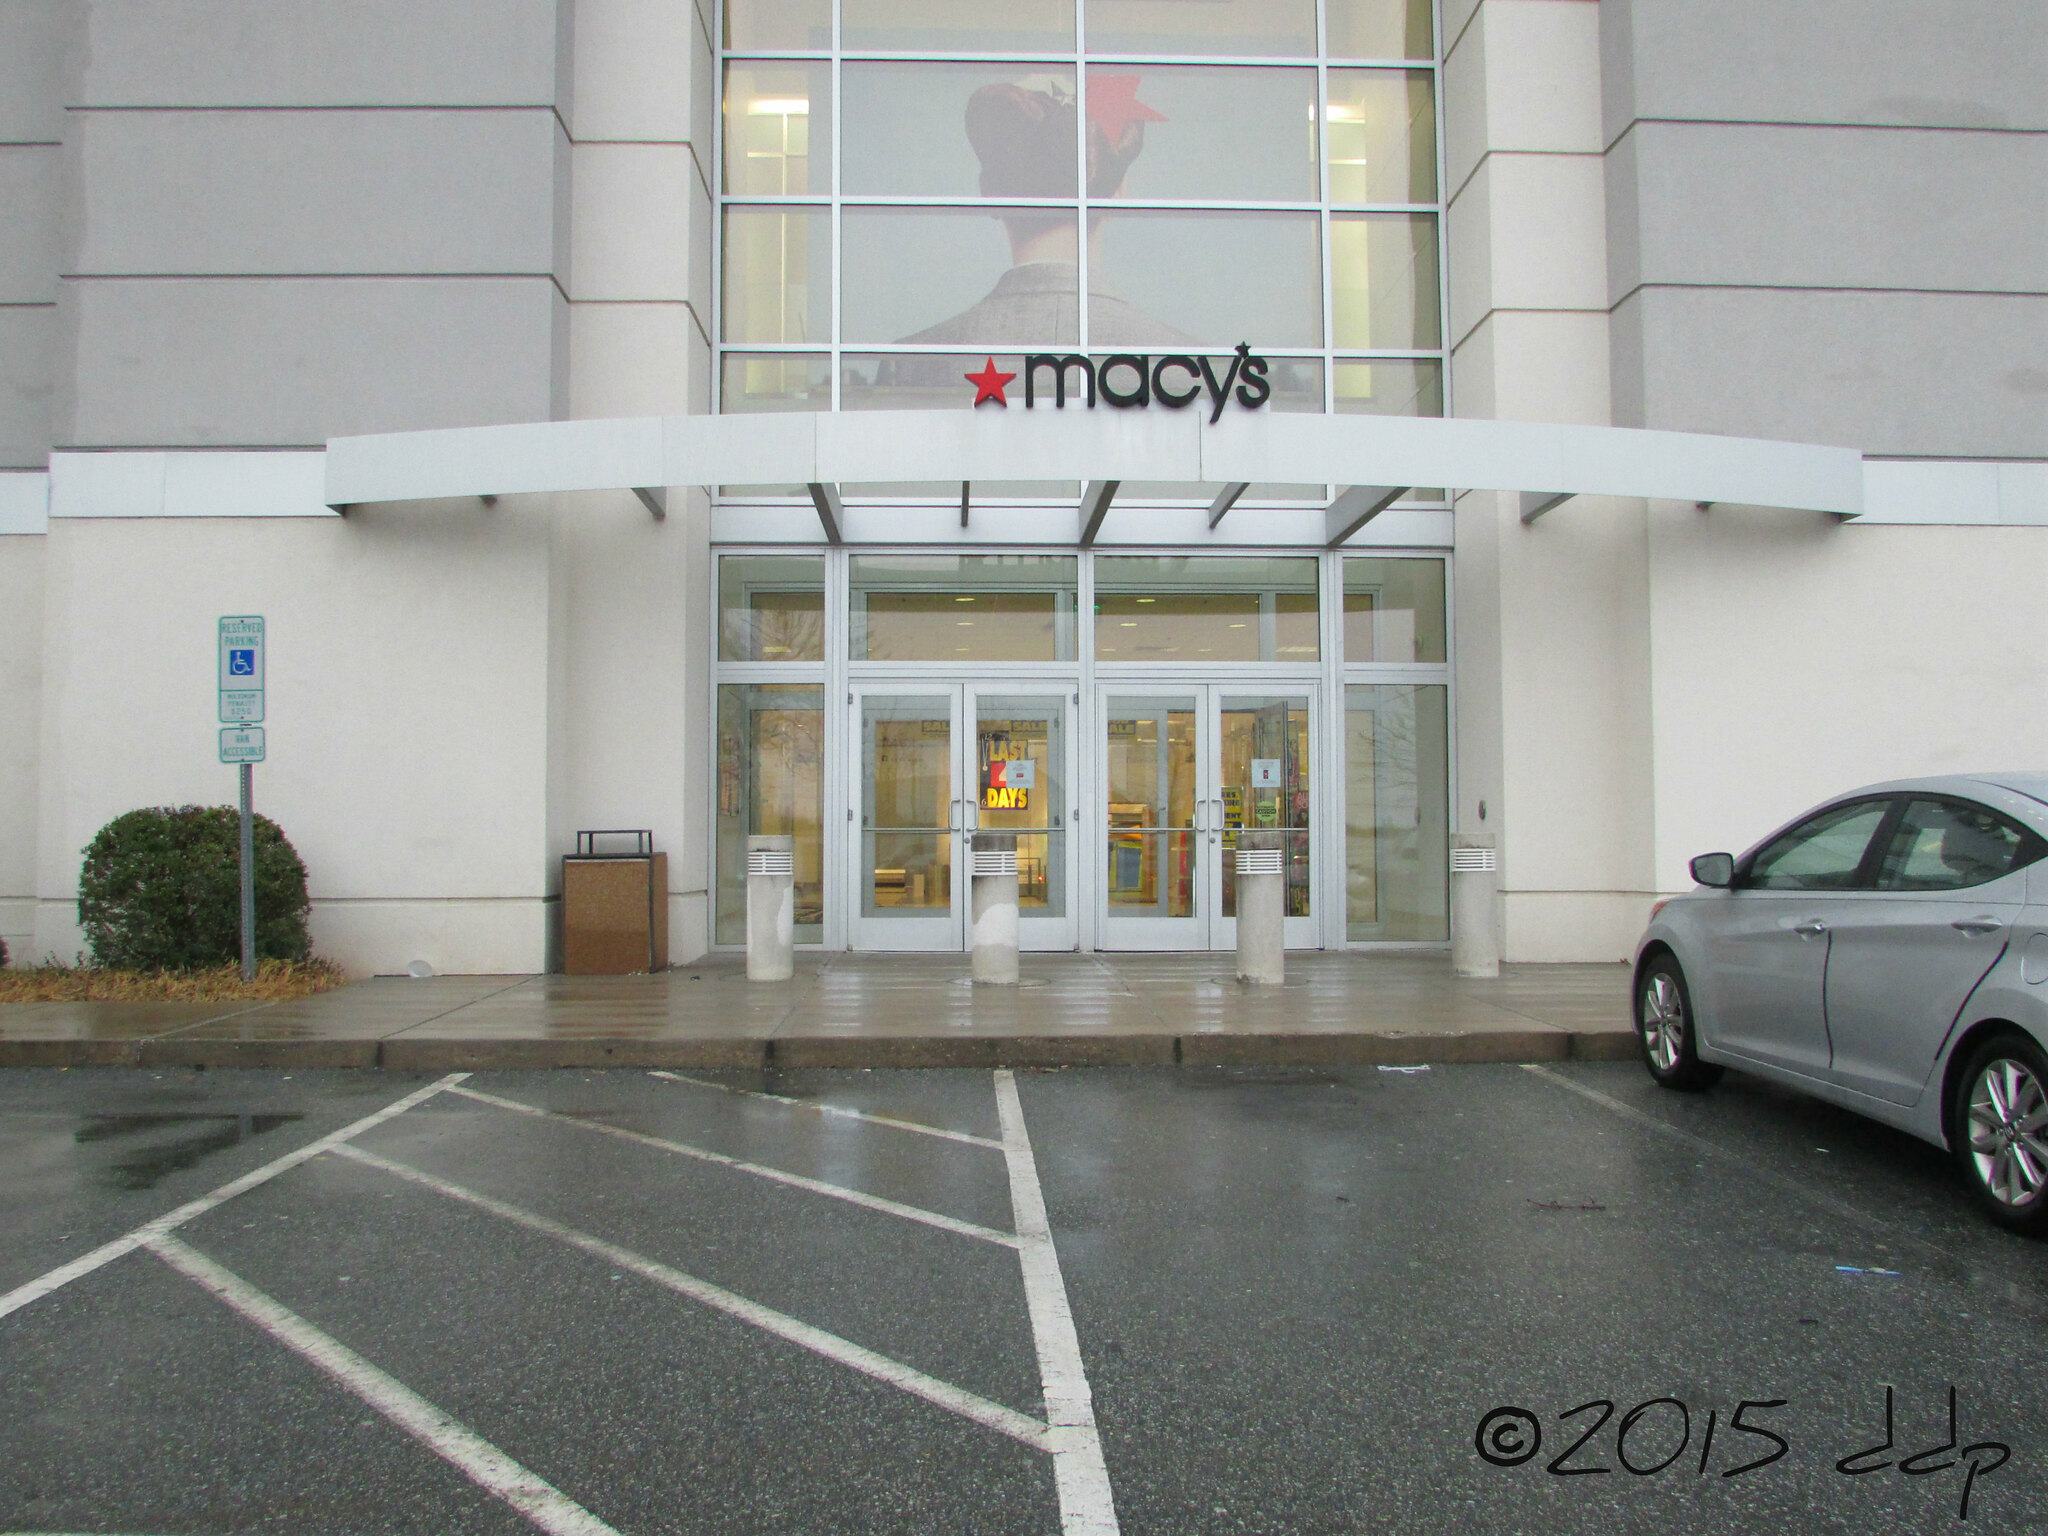 Macy's -- Wendover, Greensboro, North Carolina